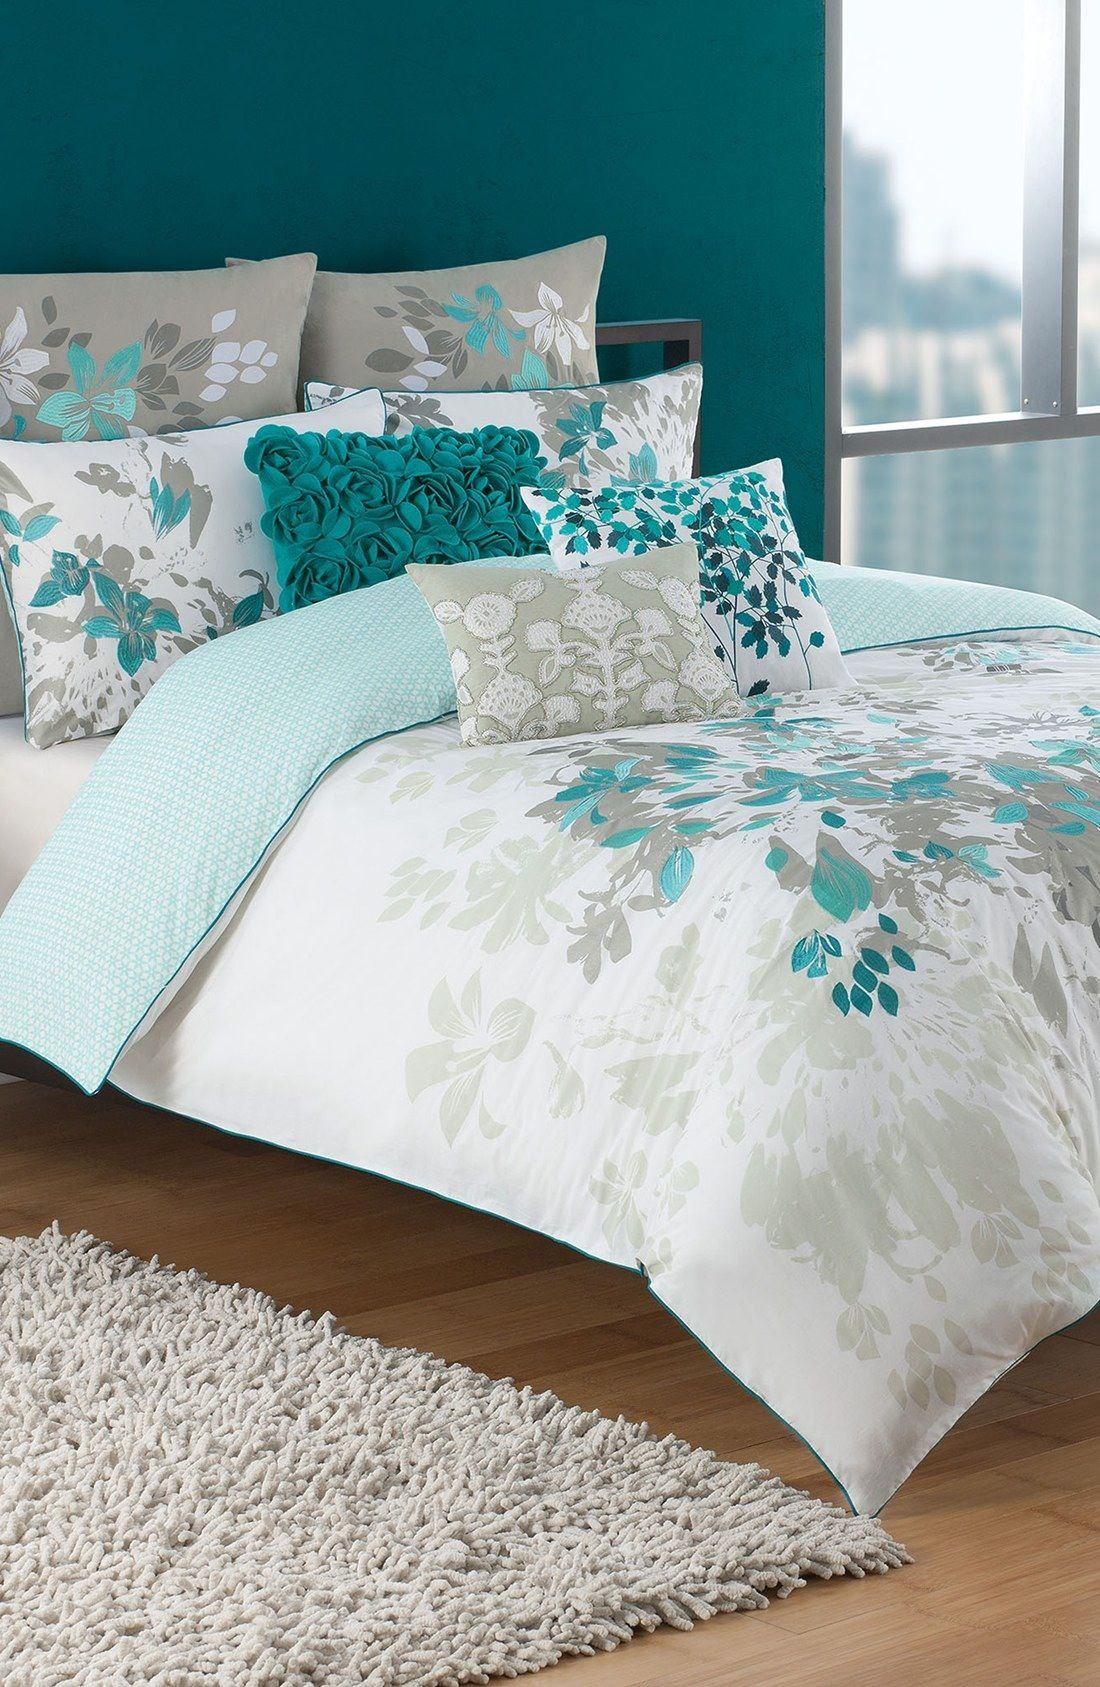 love this teal white and grey bedding set bedrooms pinterest bedding sets and teal. Black Bedroom Furniture Sets. Home Design Ideas